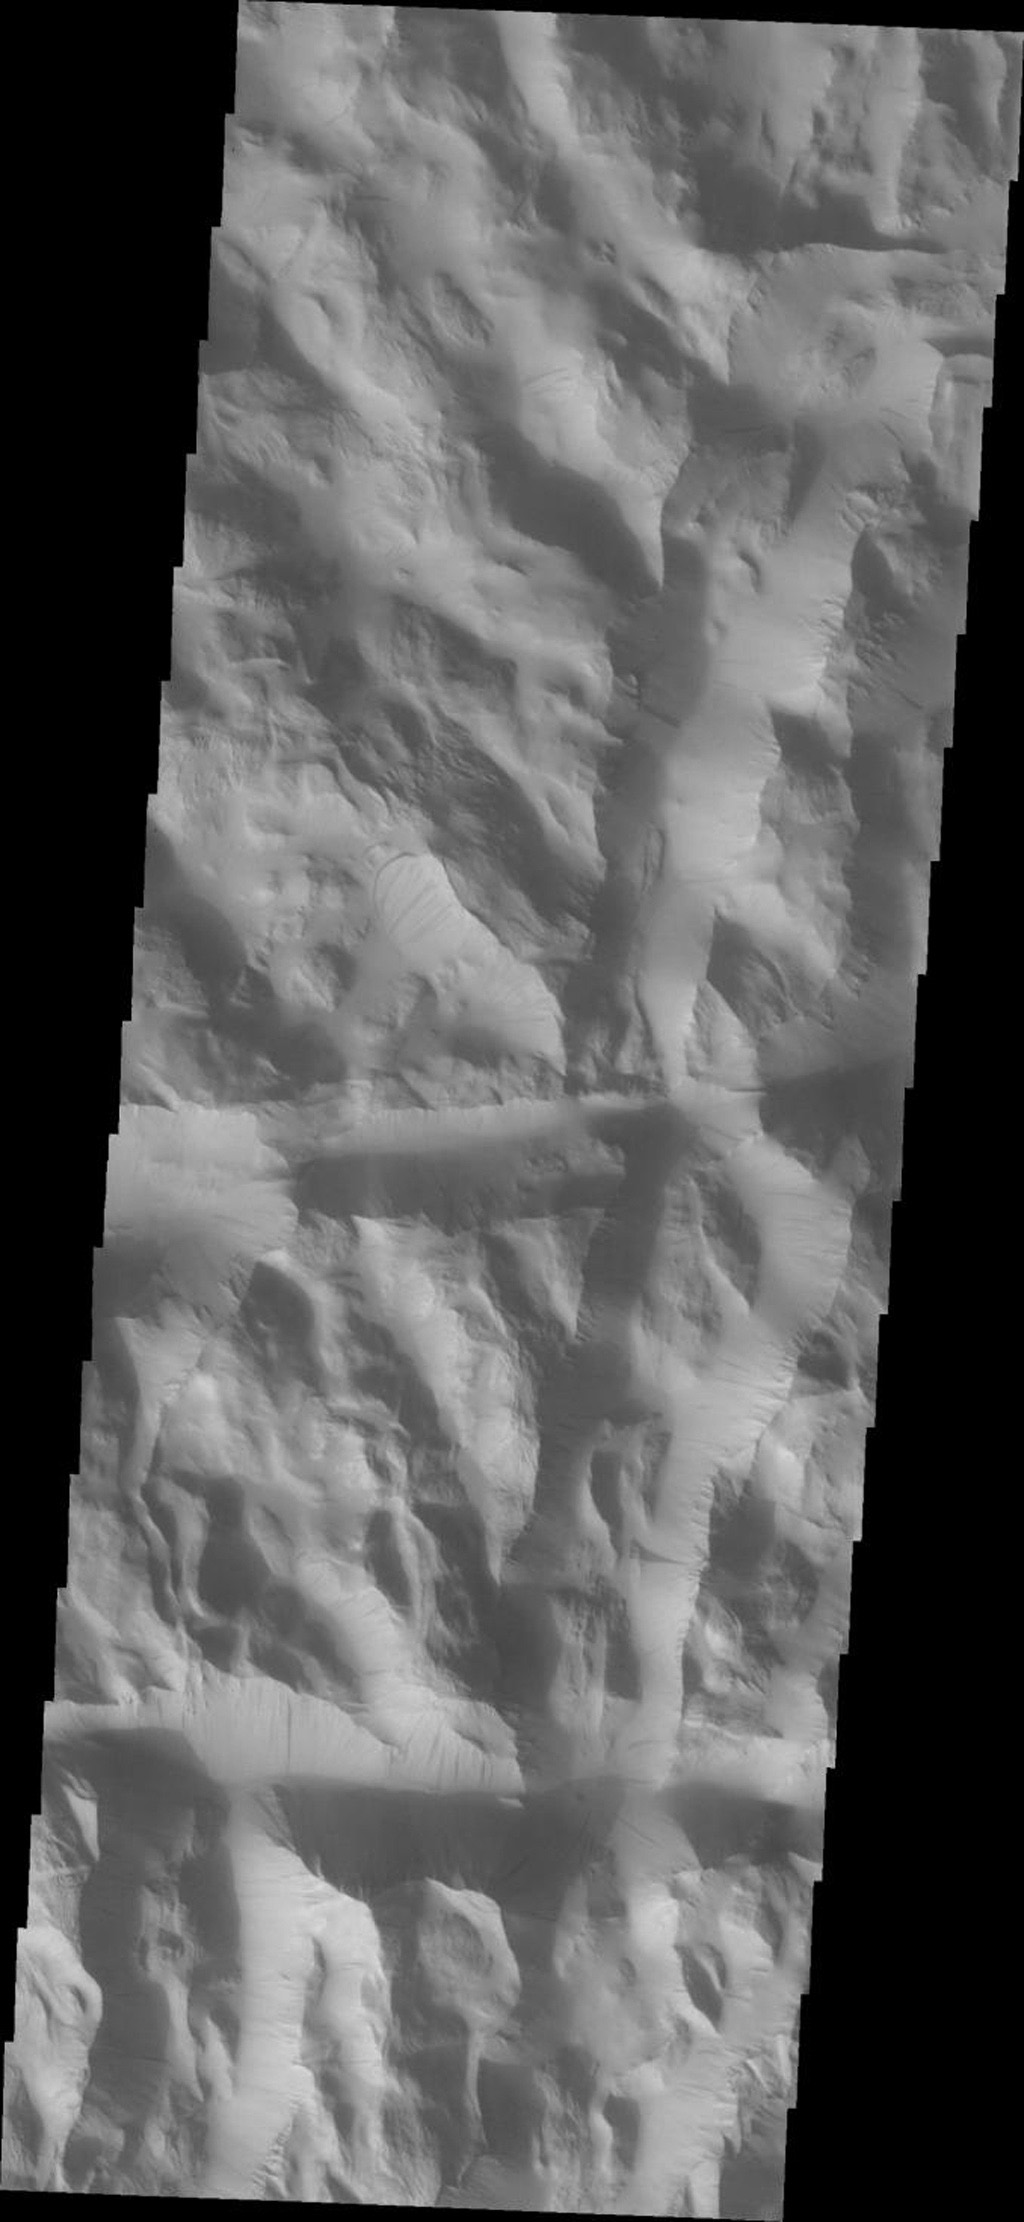 Dark slope streaks are common in Lycus Sulci on Mars in this image from 2001 Mars Odyssey spacecraft.